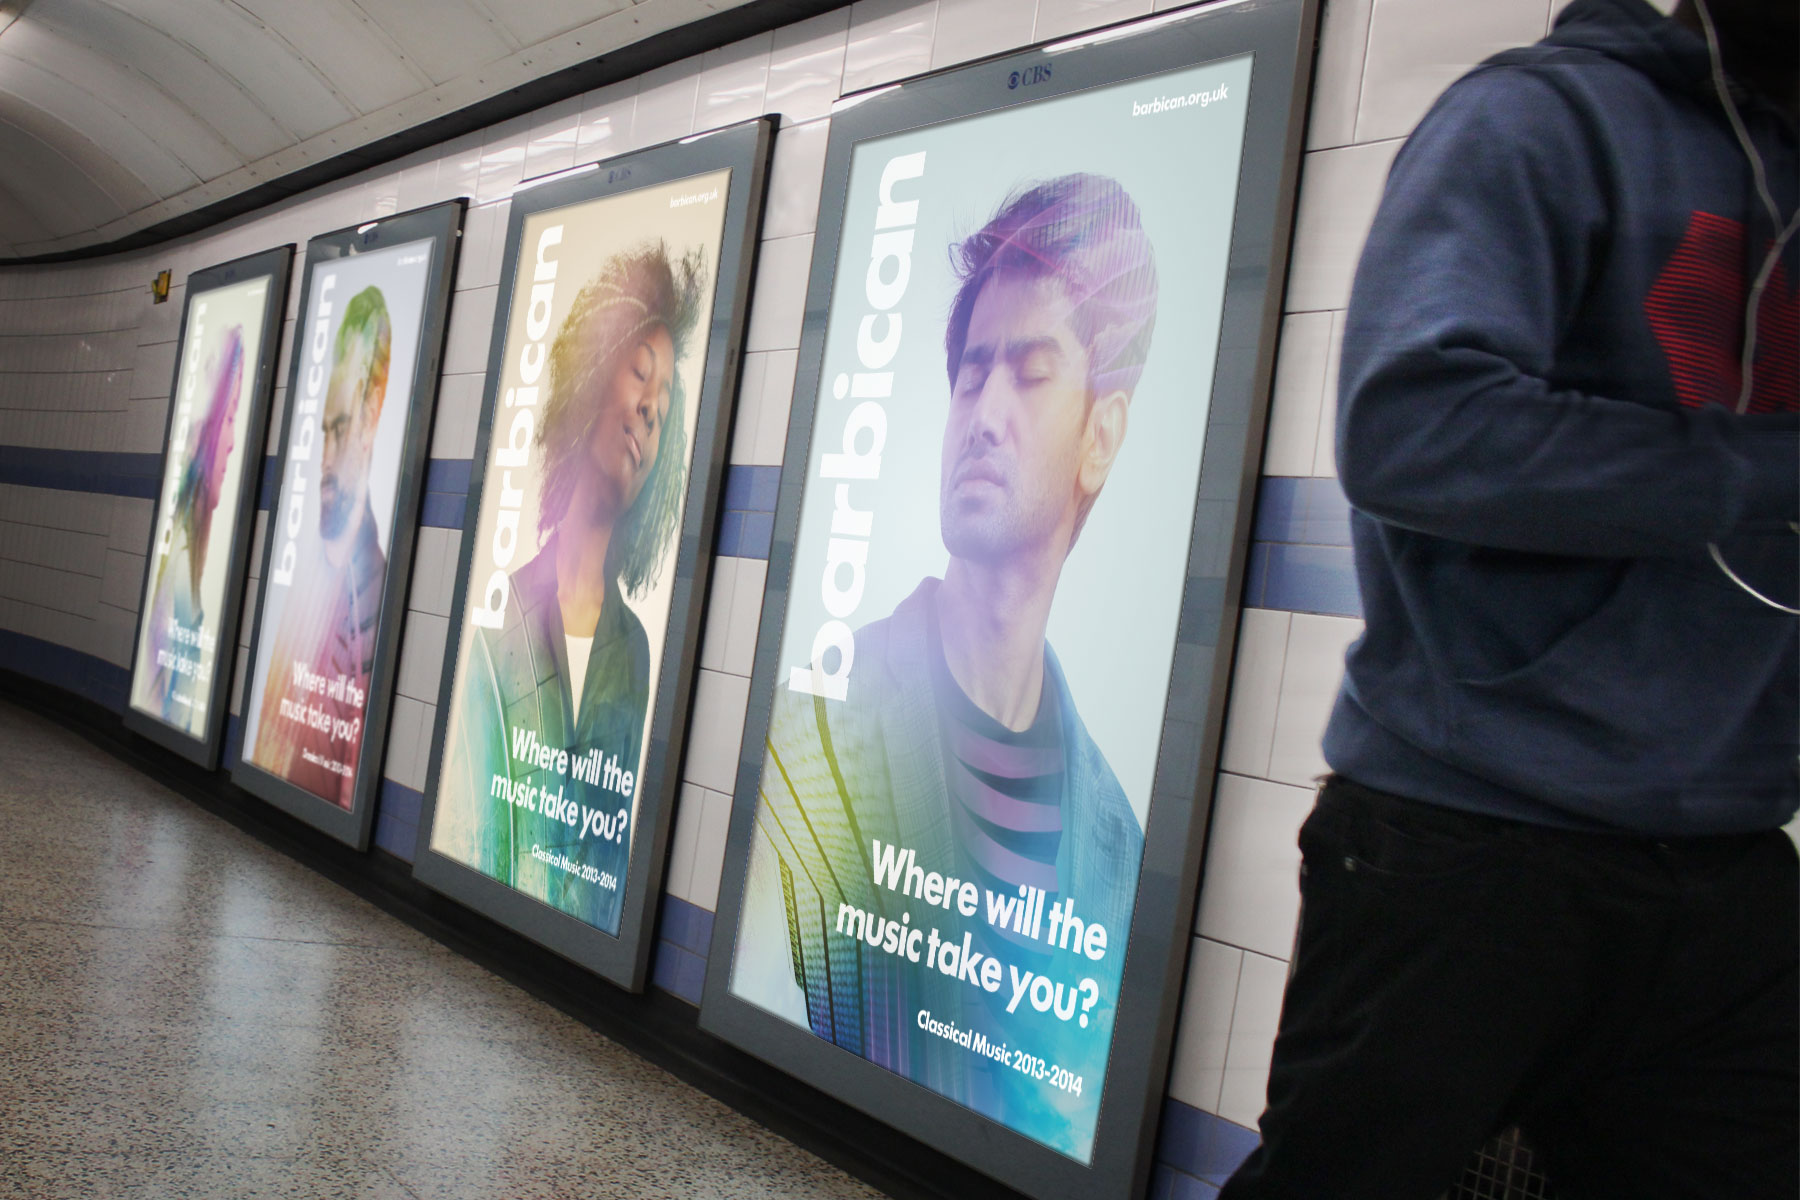 The extensive placement of media on the Tube combined with the broad use of varying assets created a recognisable and striking campaign.